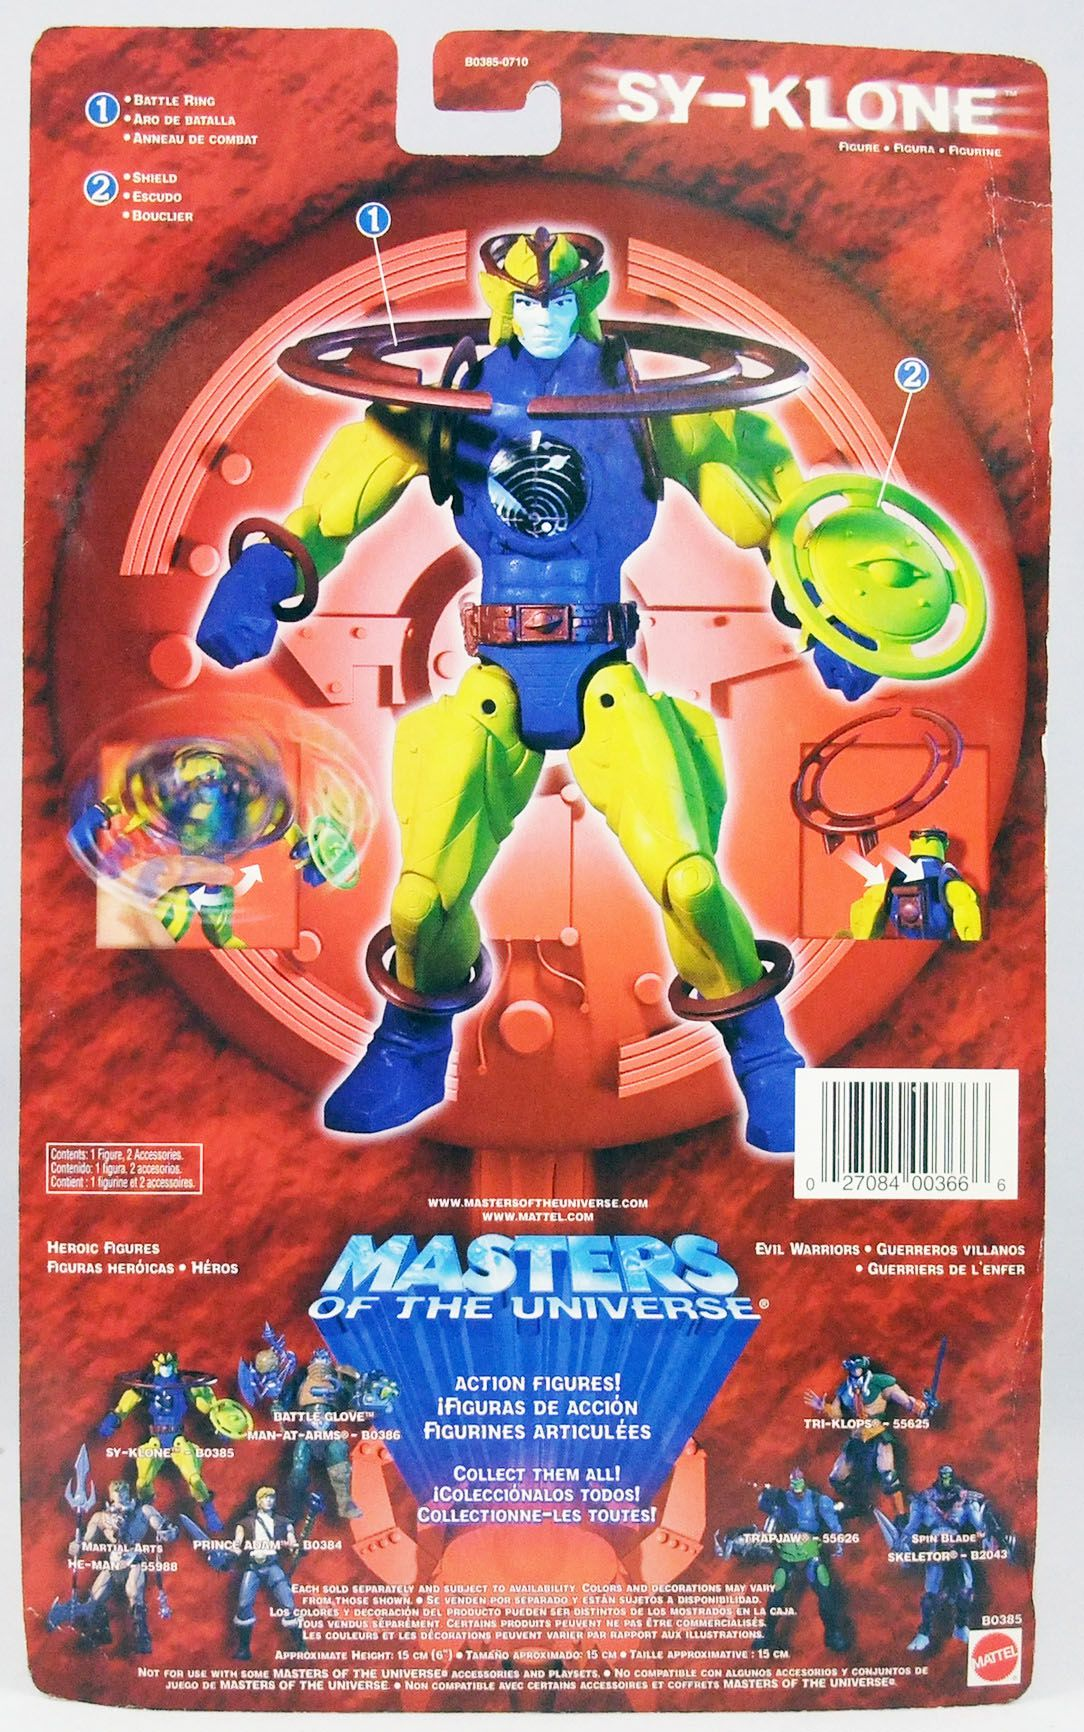 Masters of the Universe 200X - Sy-Klone